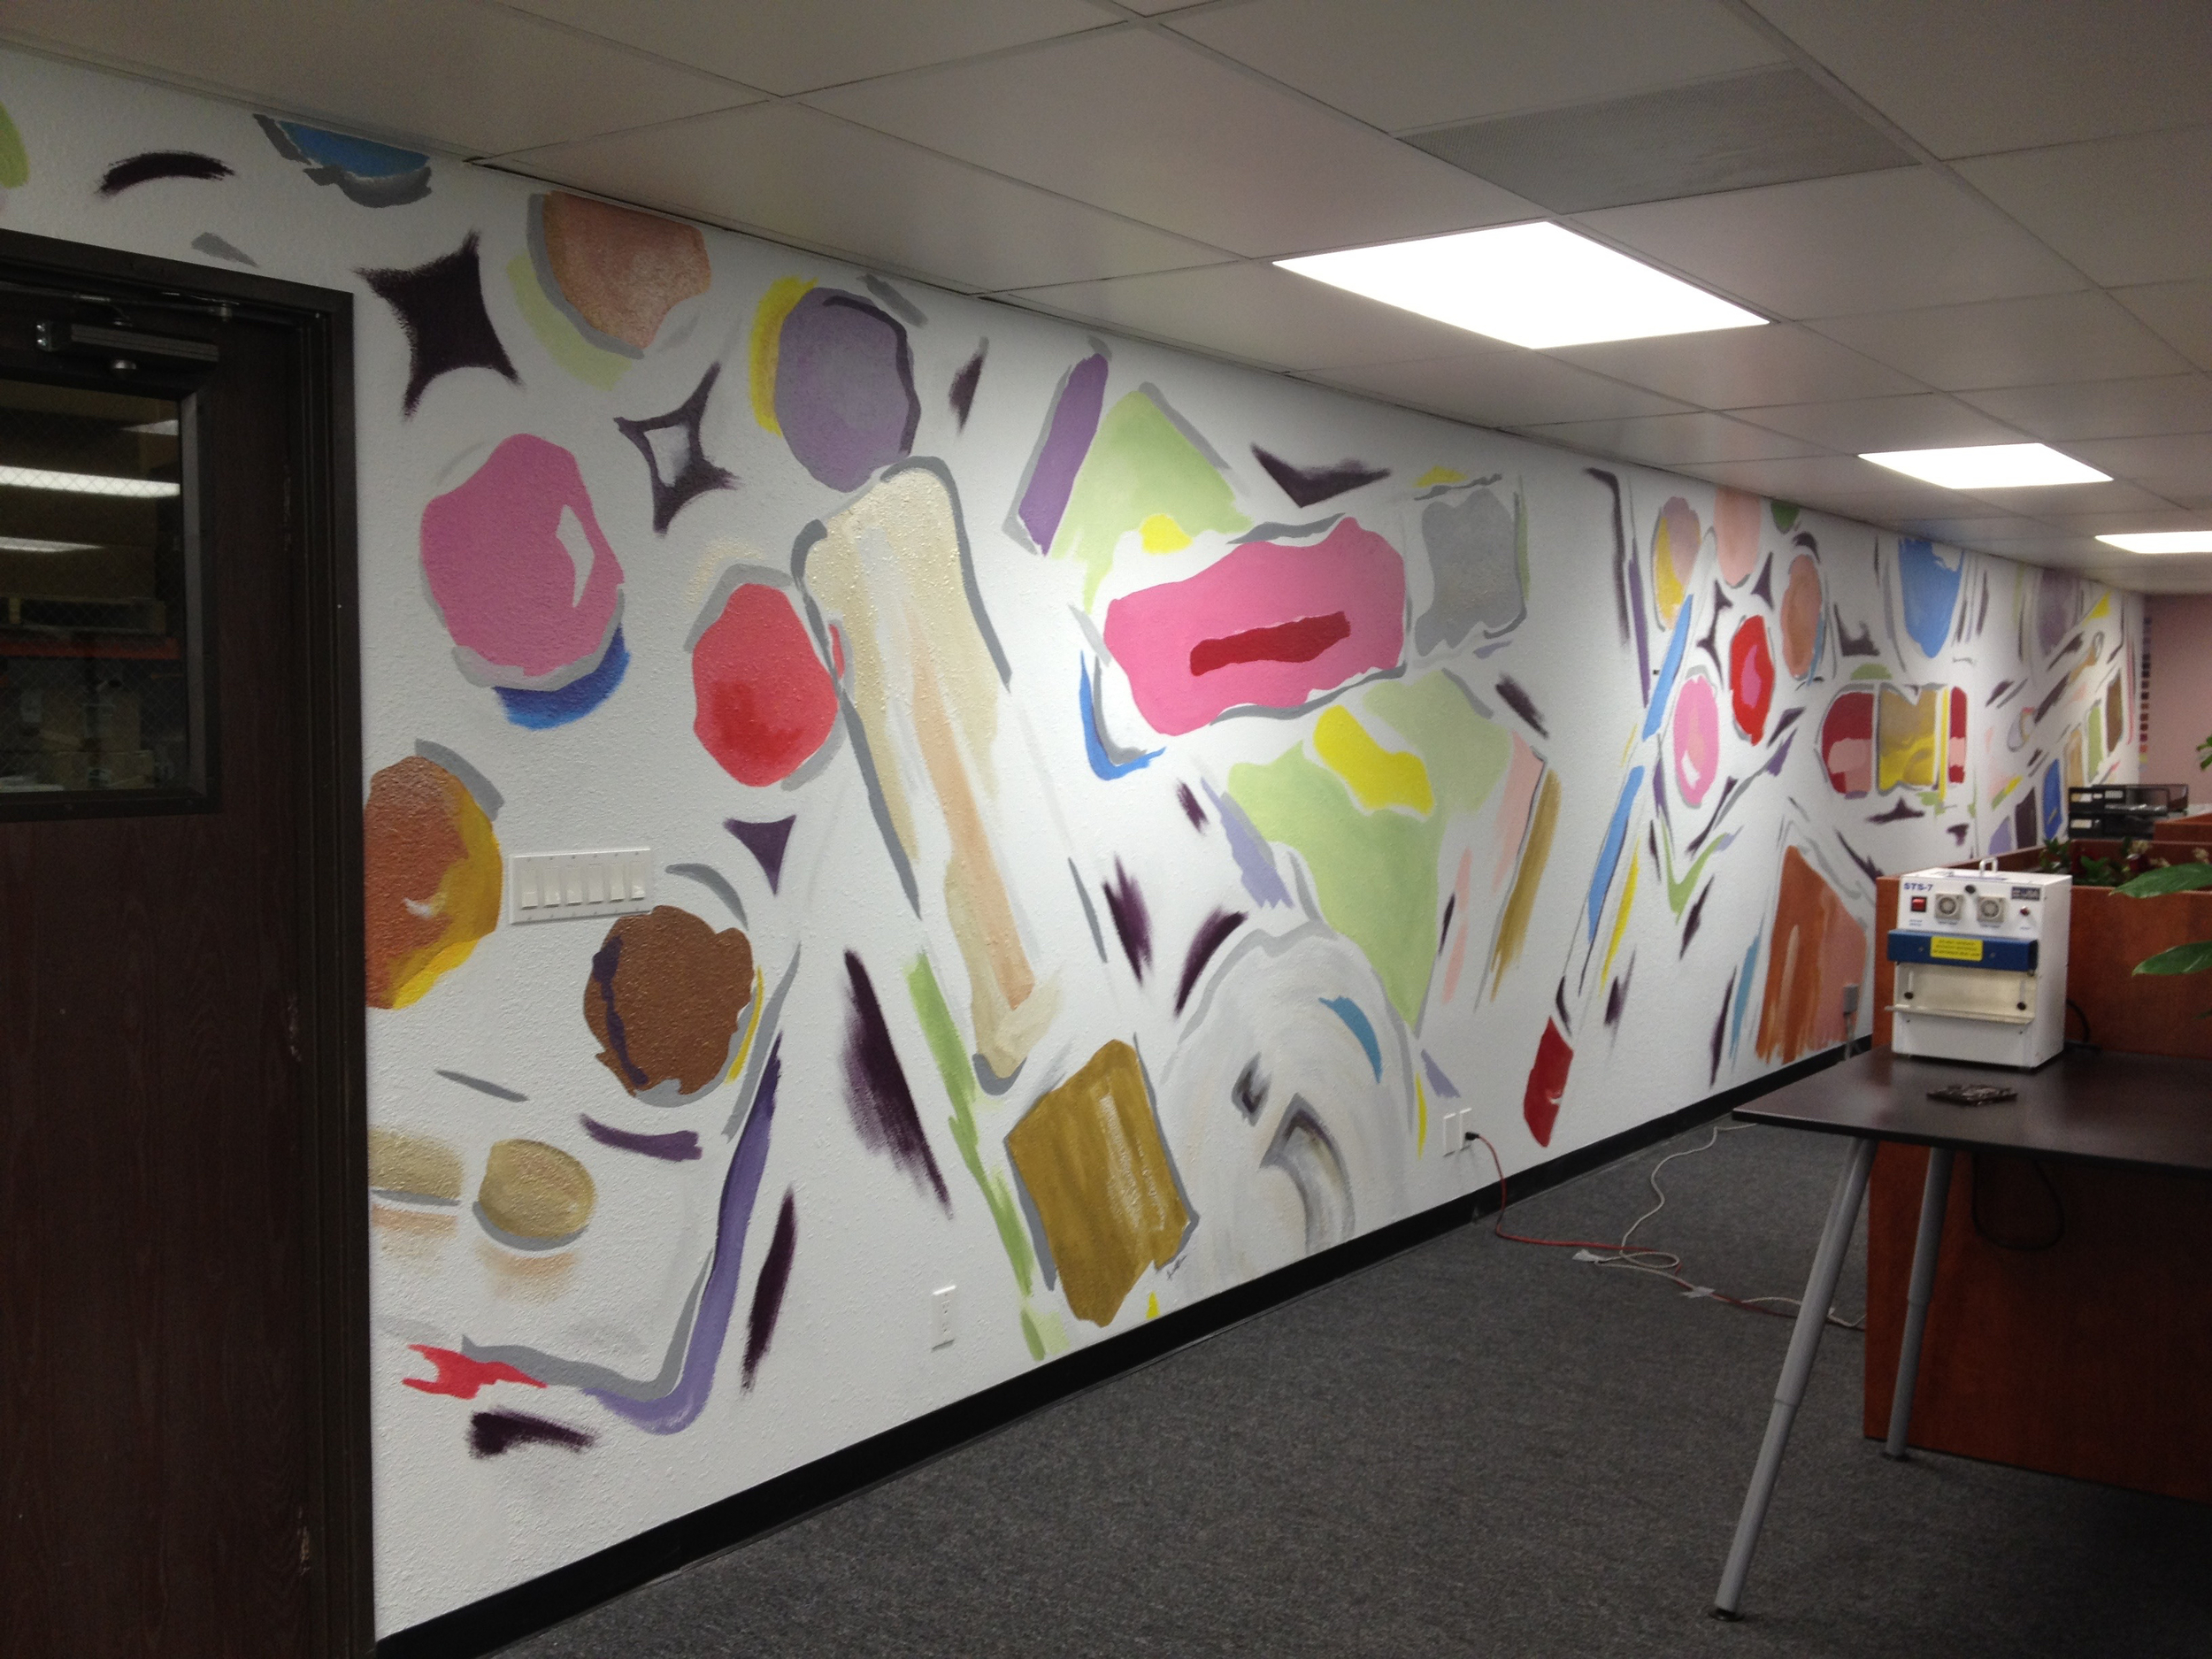 Commercial Mural for Cosmetic Company